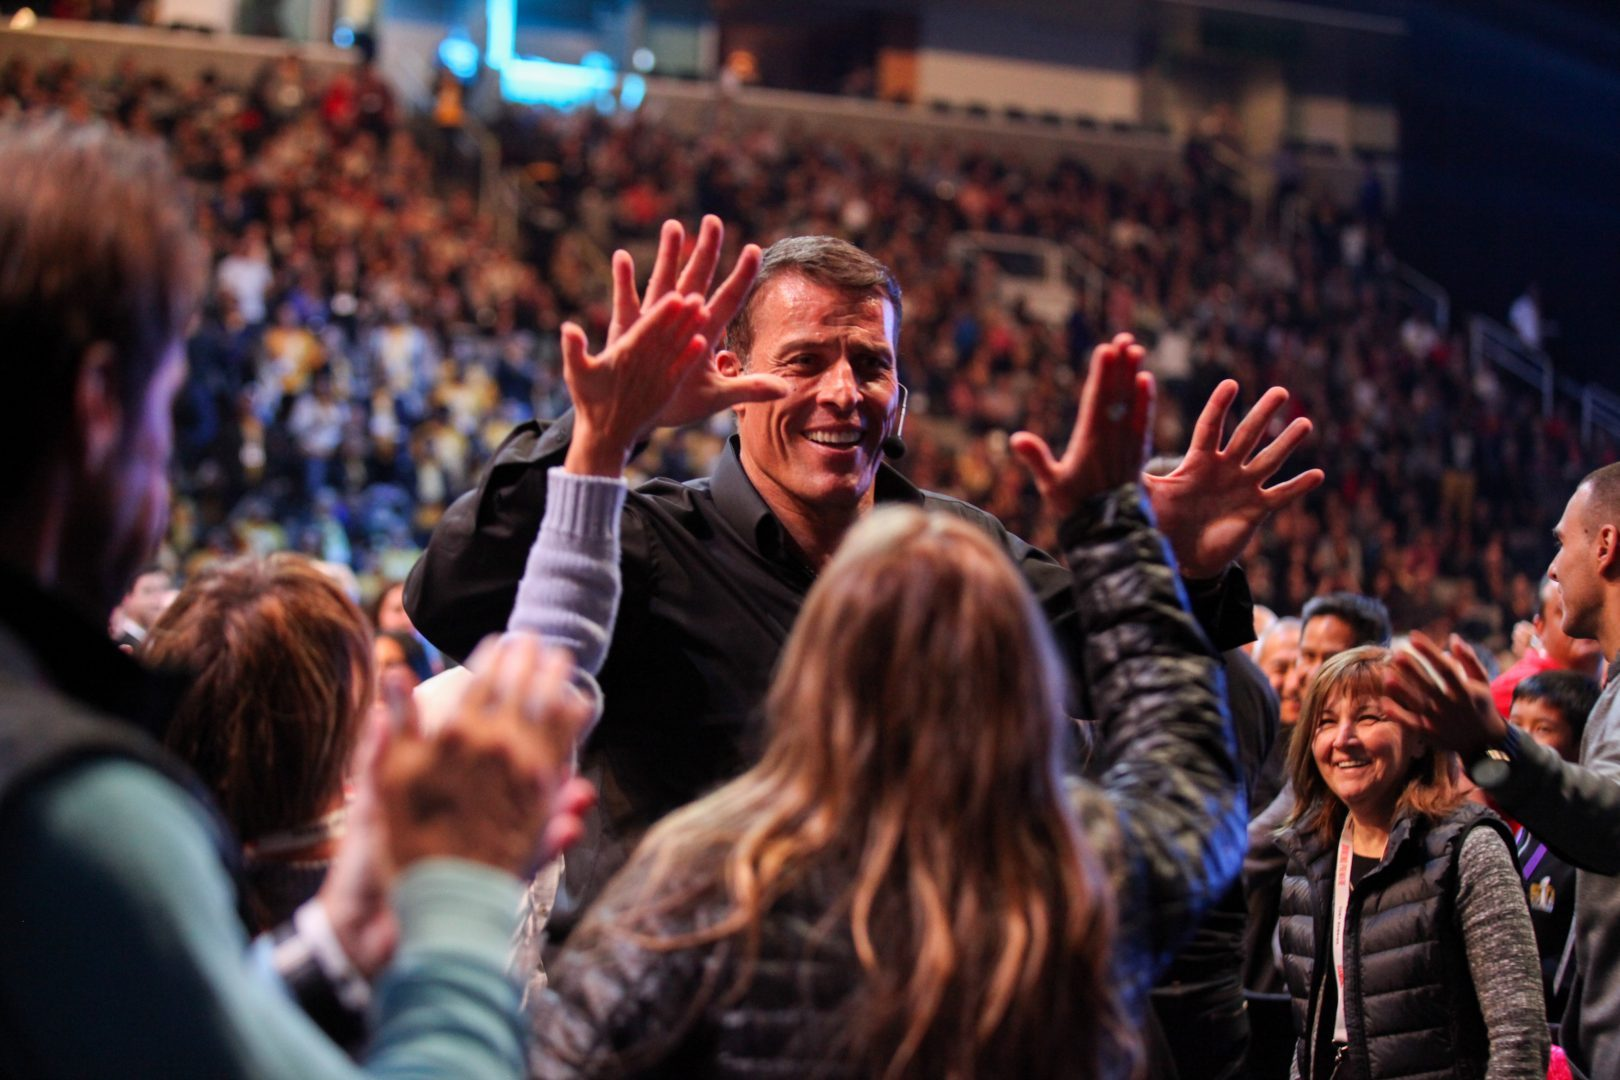 sales funnel examples ultimate power - Tony robbins